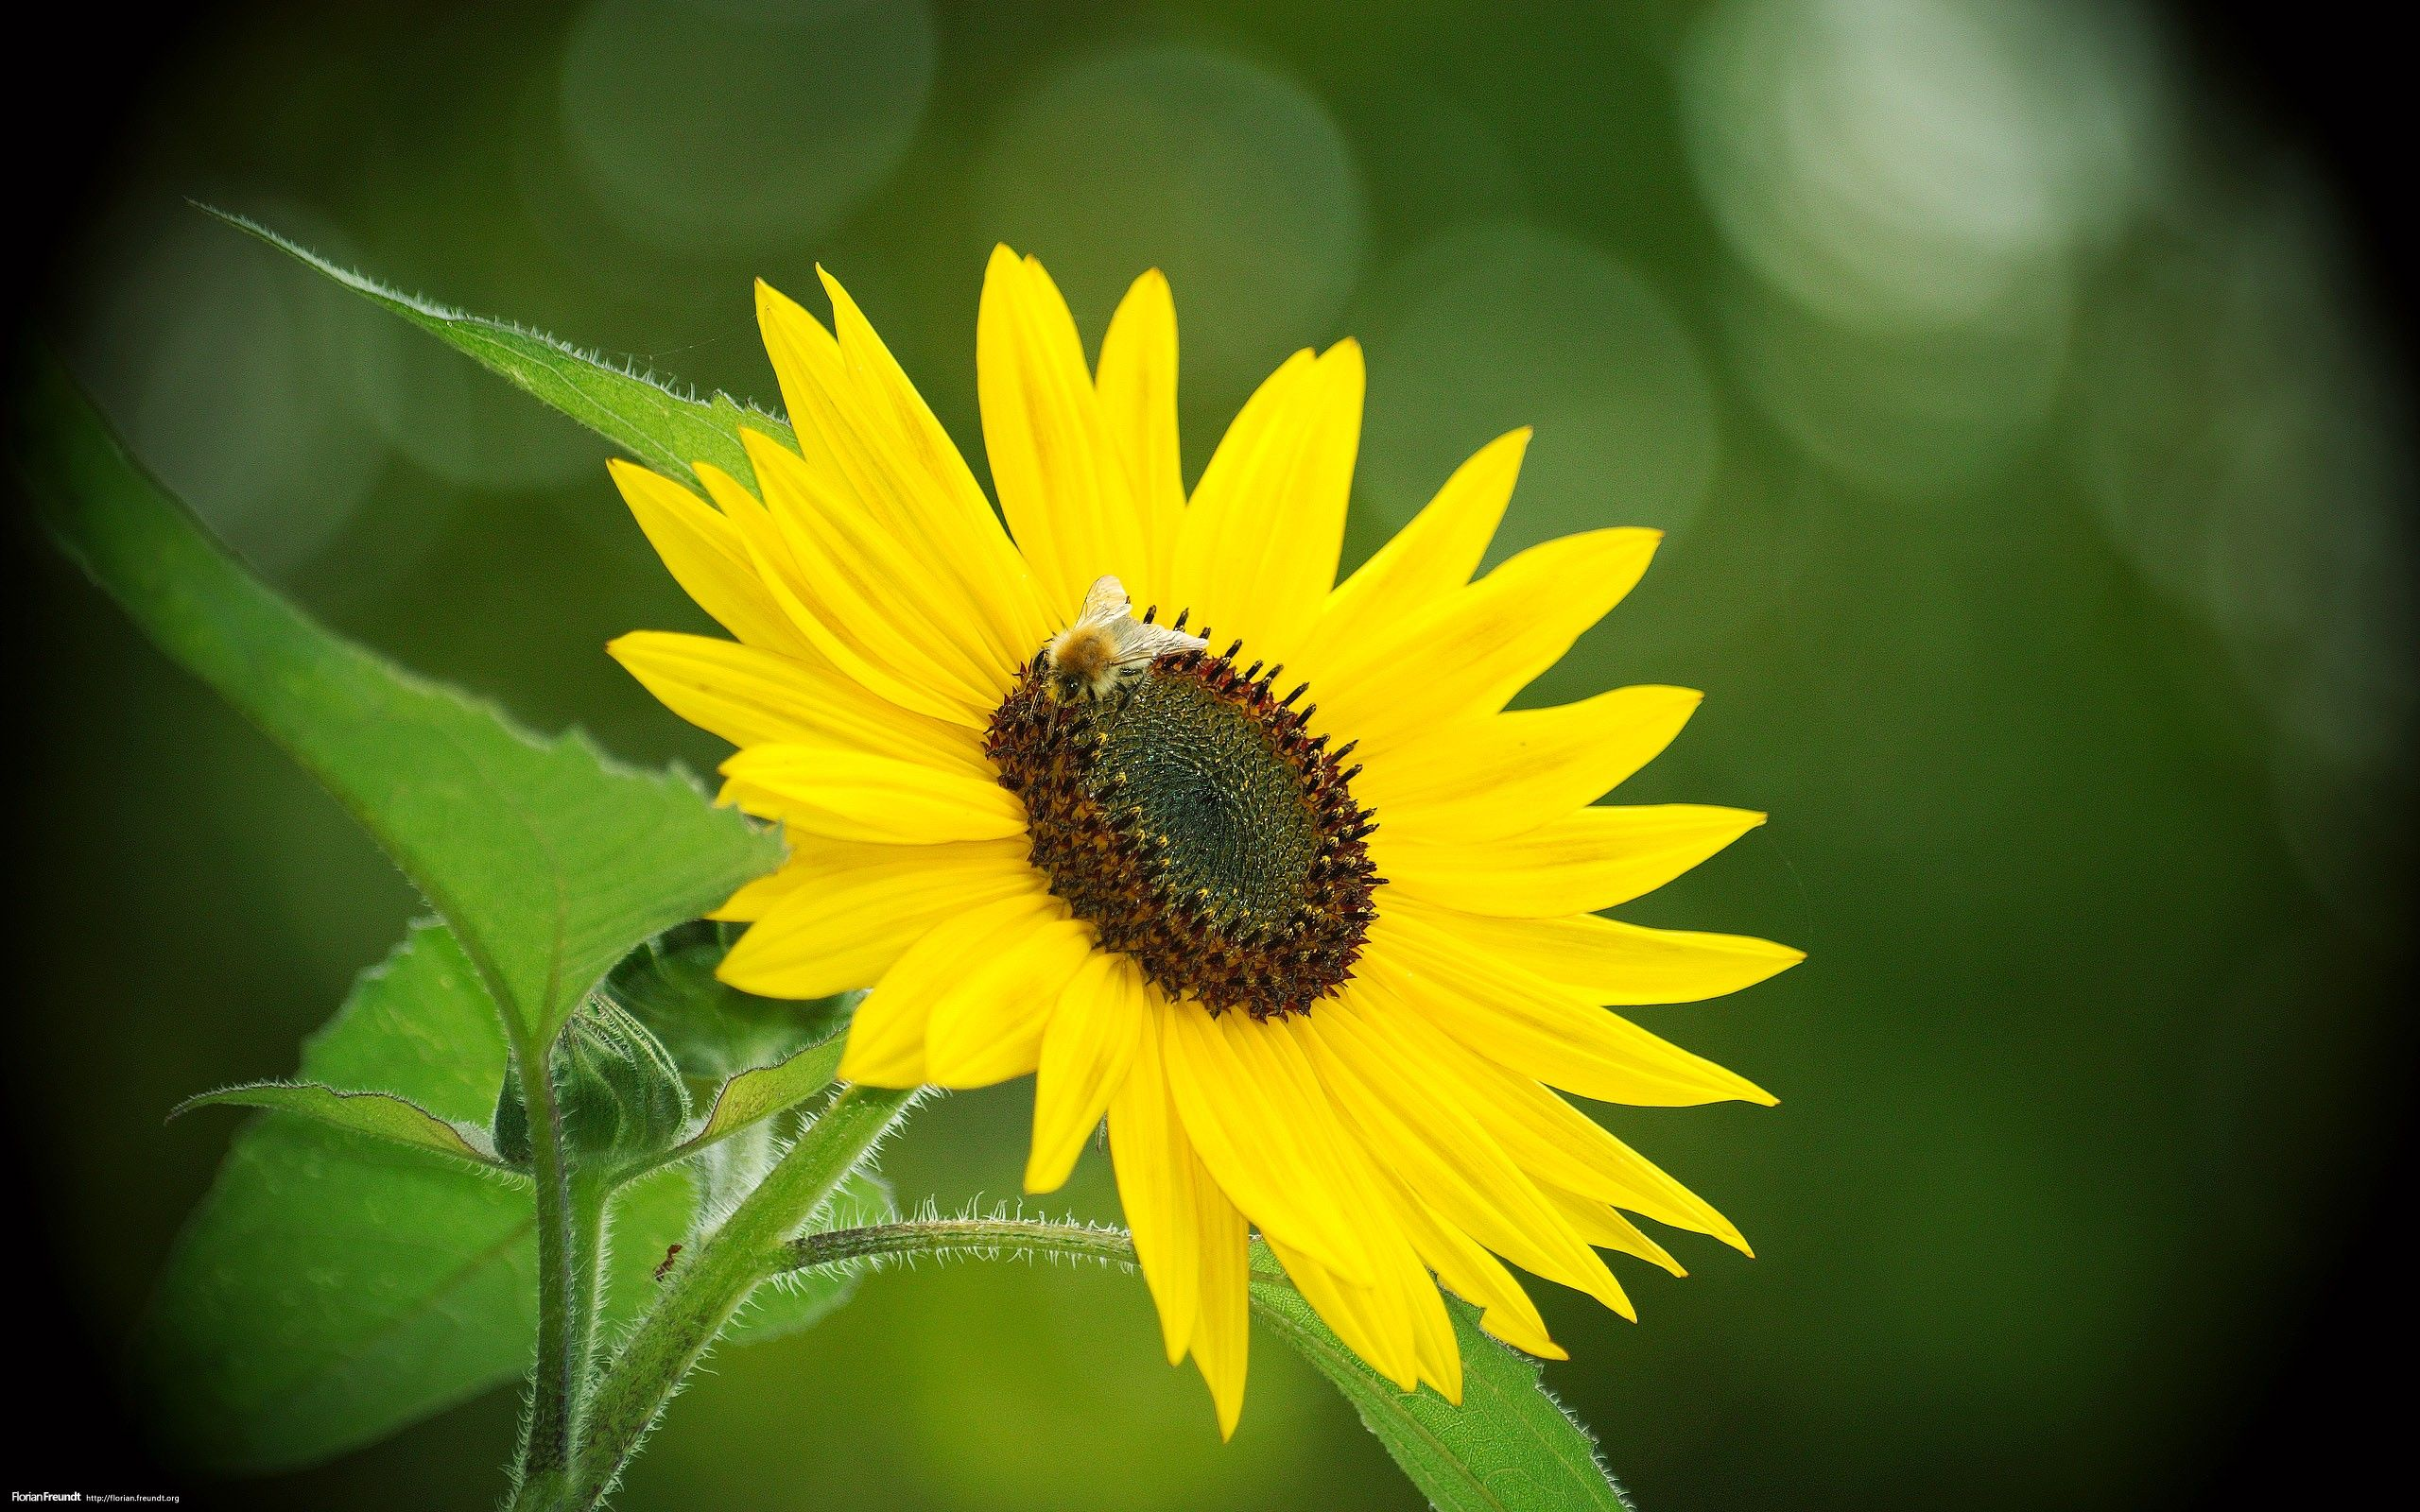 Awesome Sunflower Background In High Quality Sunflowers Background Sunflower Photo Sunflower